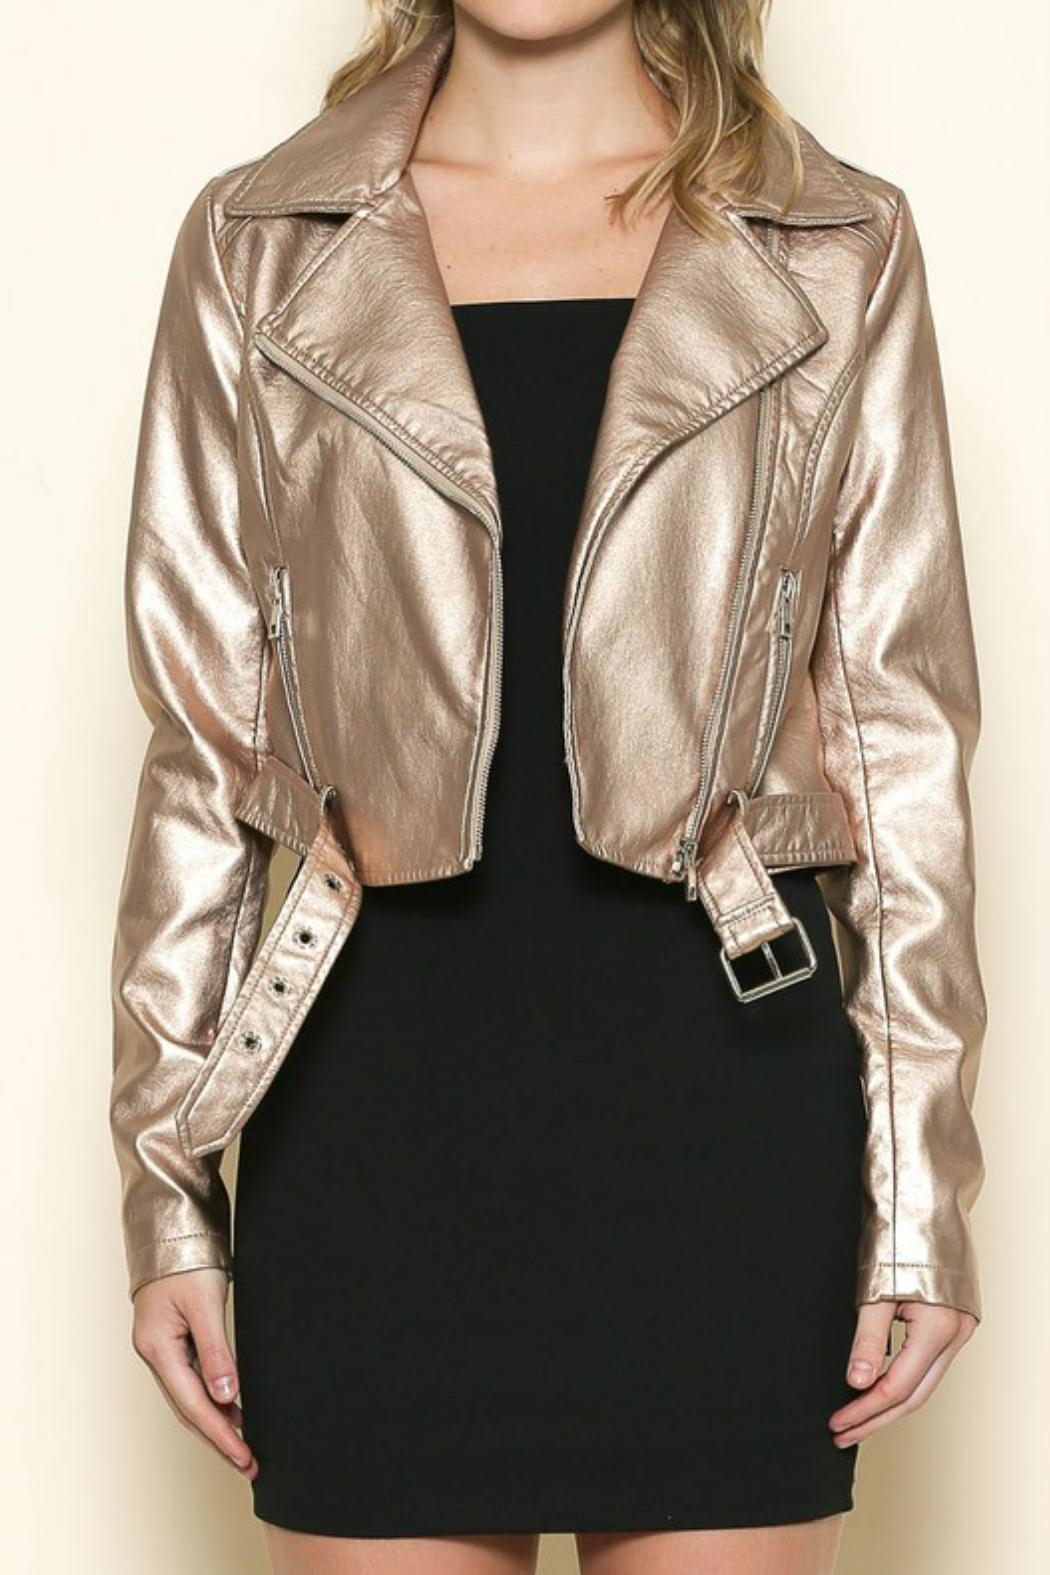 Sole Mio Rose-Gold Leather Jacket - Main Image